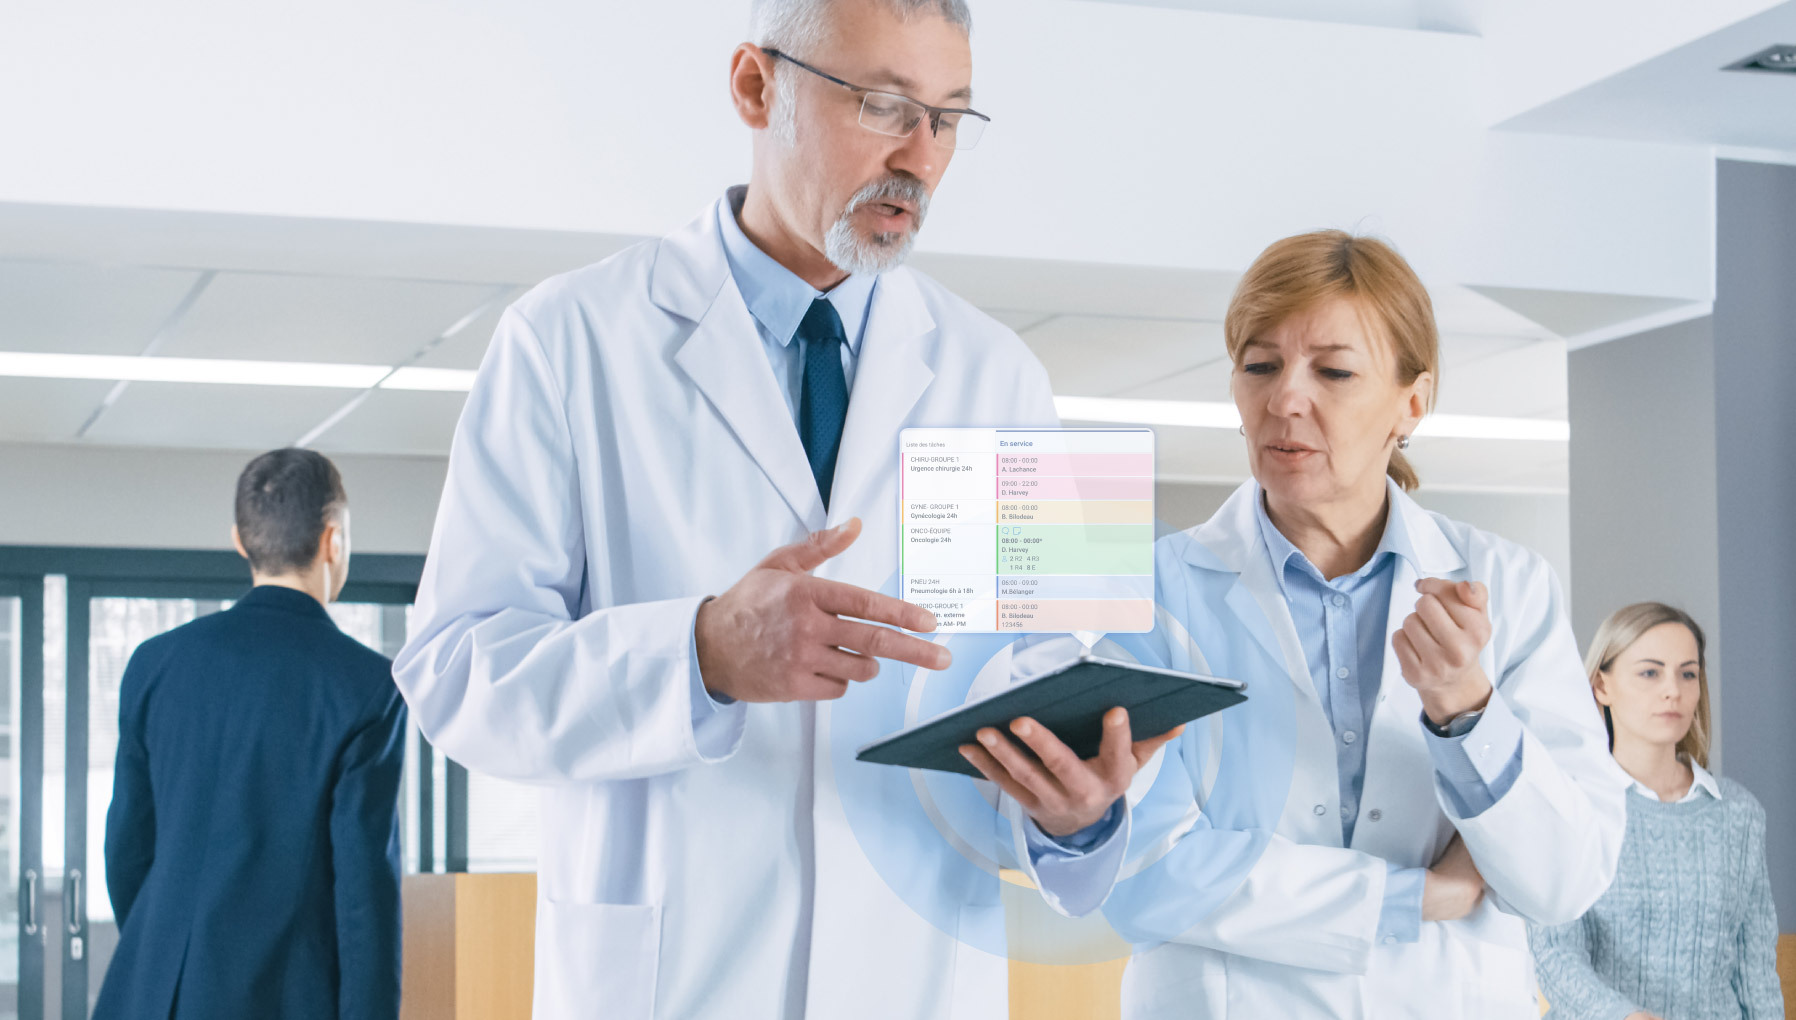 Care Team Management Solution for Health Facilities